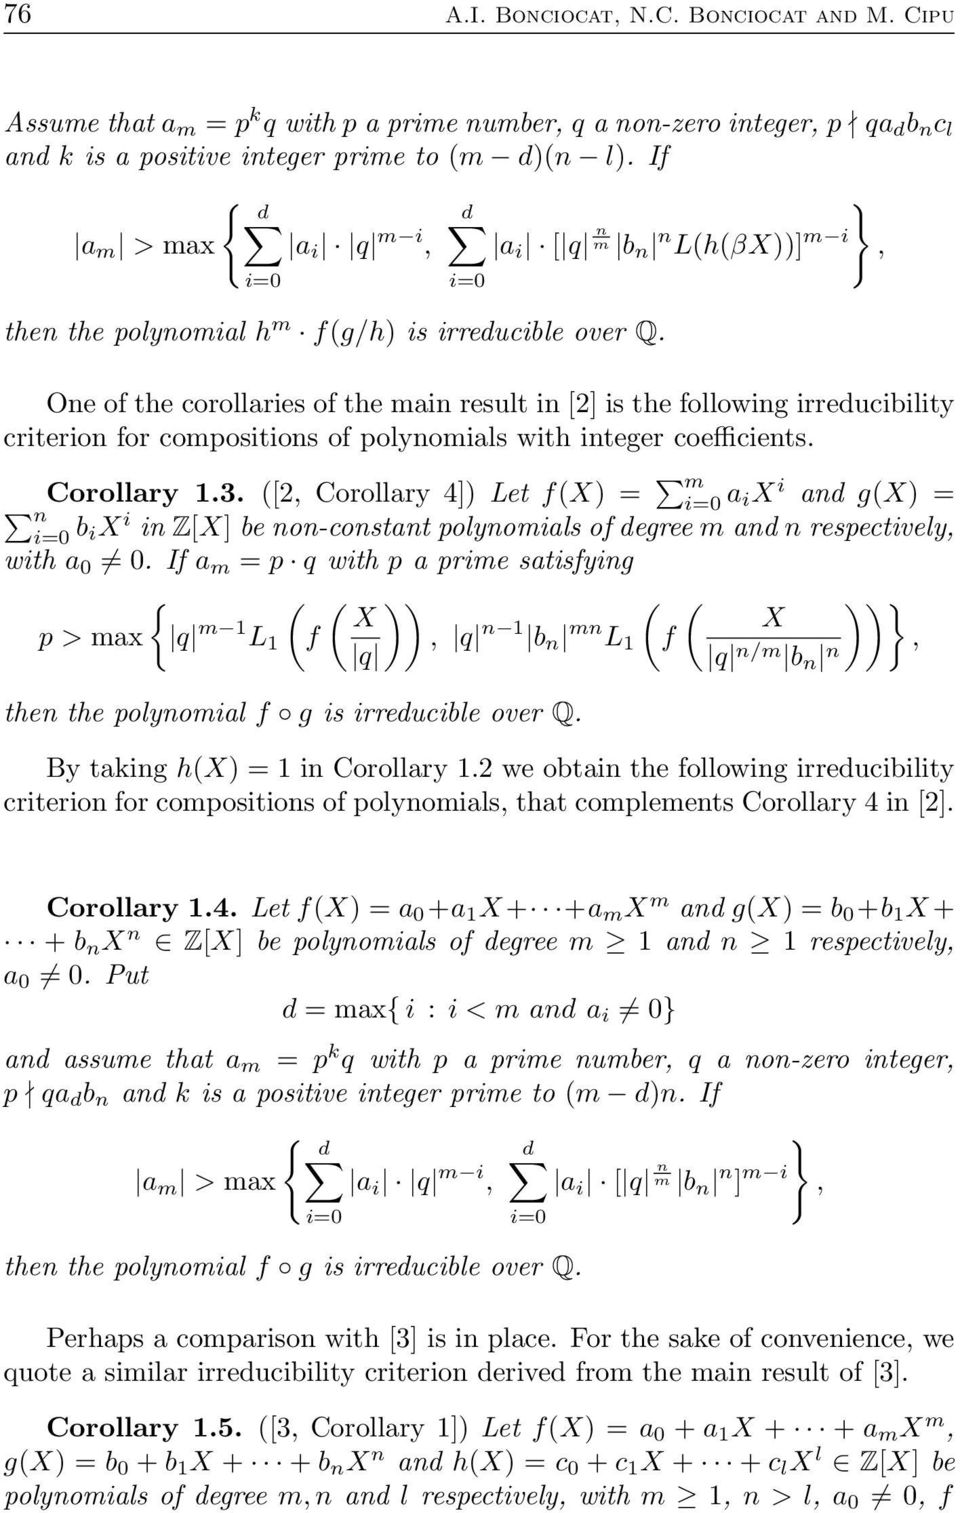 One of the corollaries of the main result in [2] is the following irreducibility criterion for compositions of polynomials with integer coefficients. Corollary 1.3.